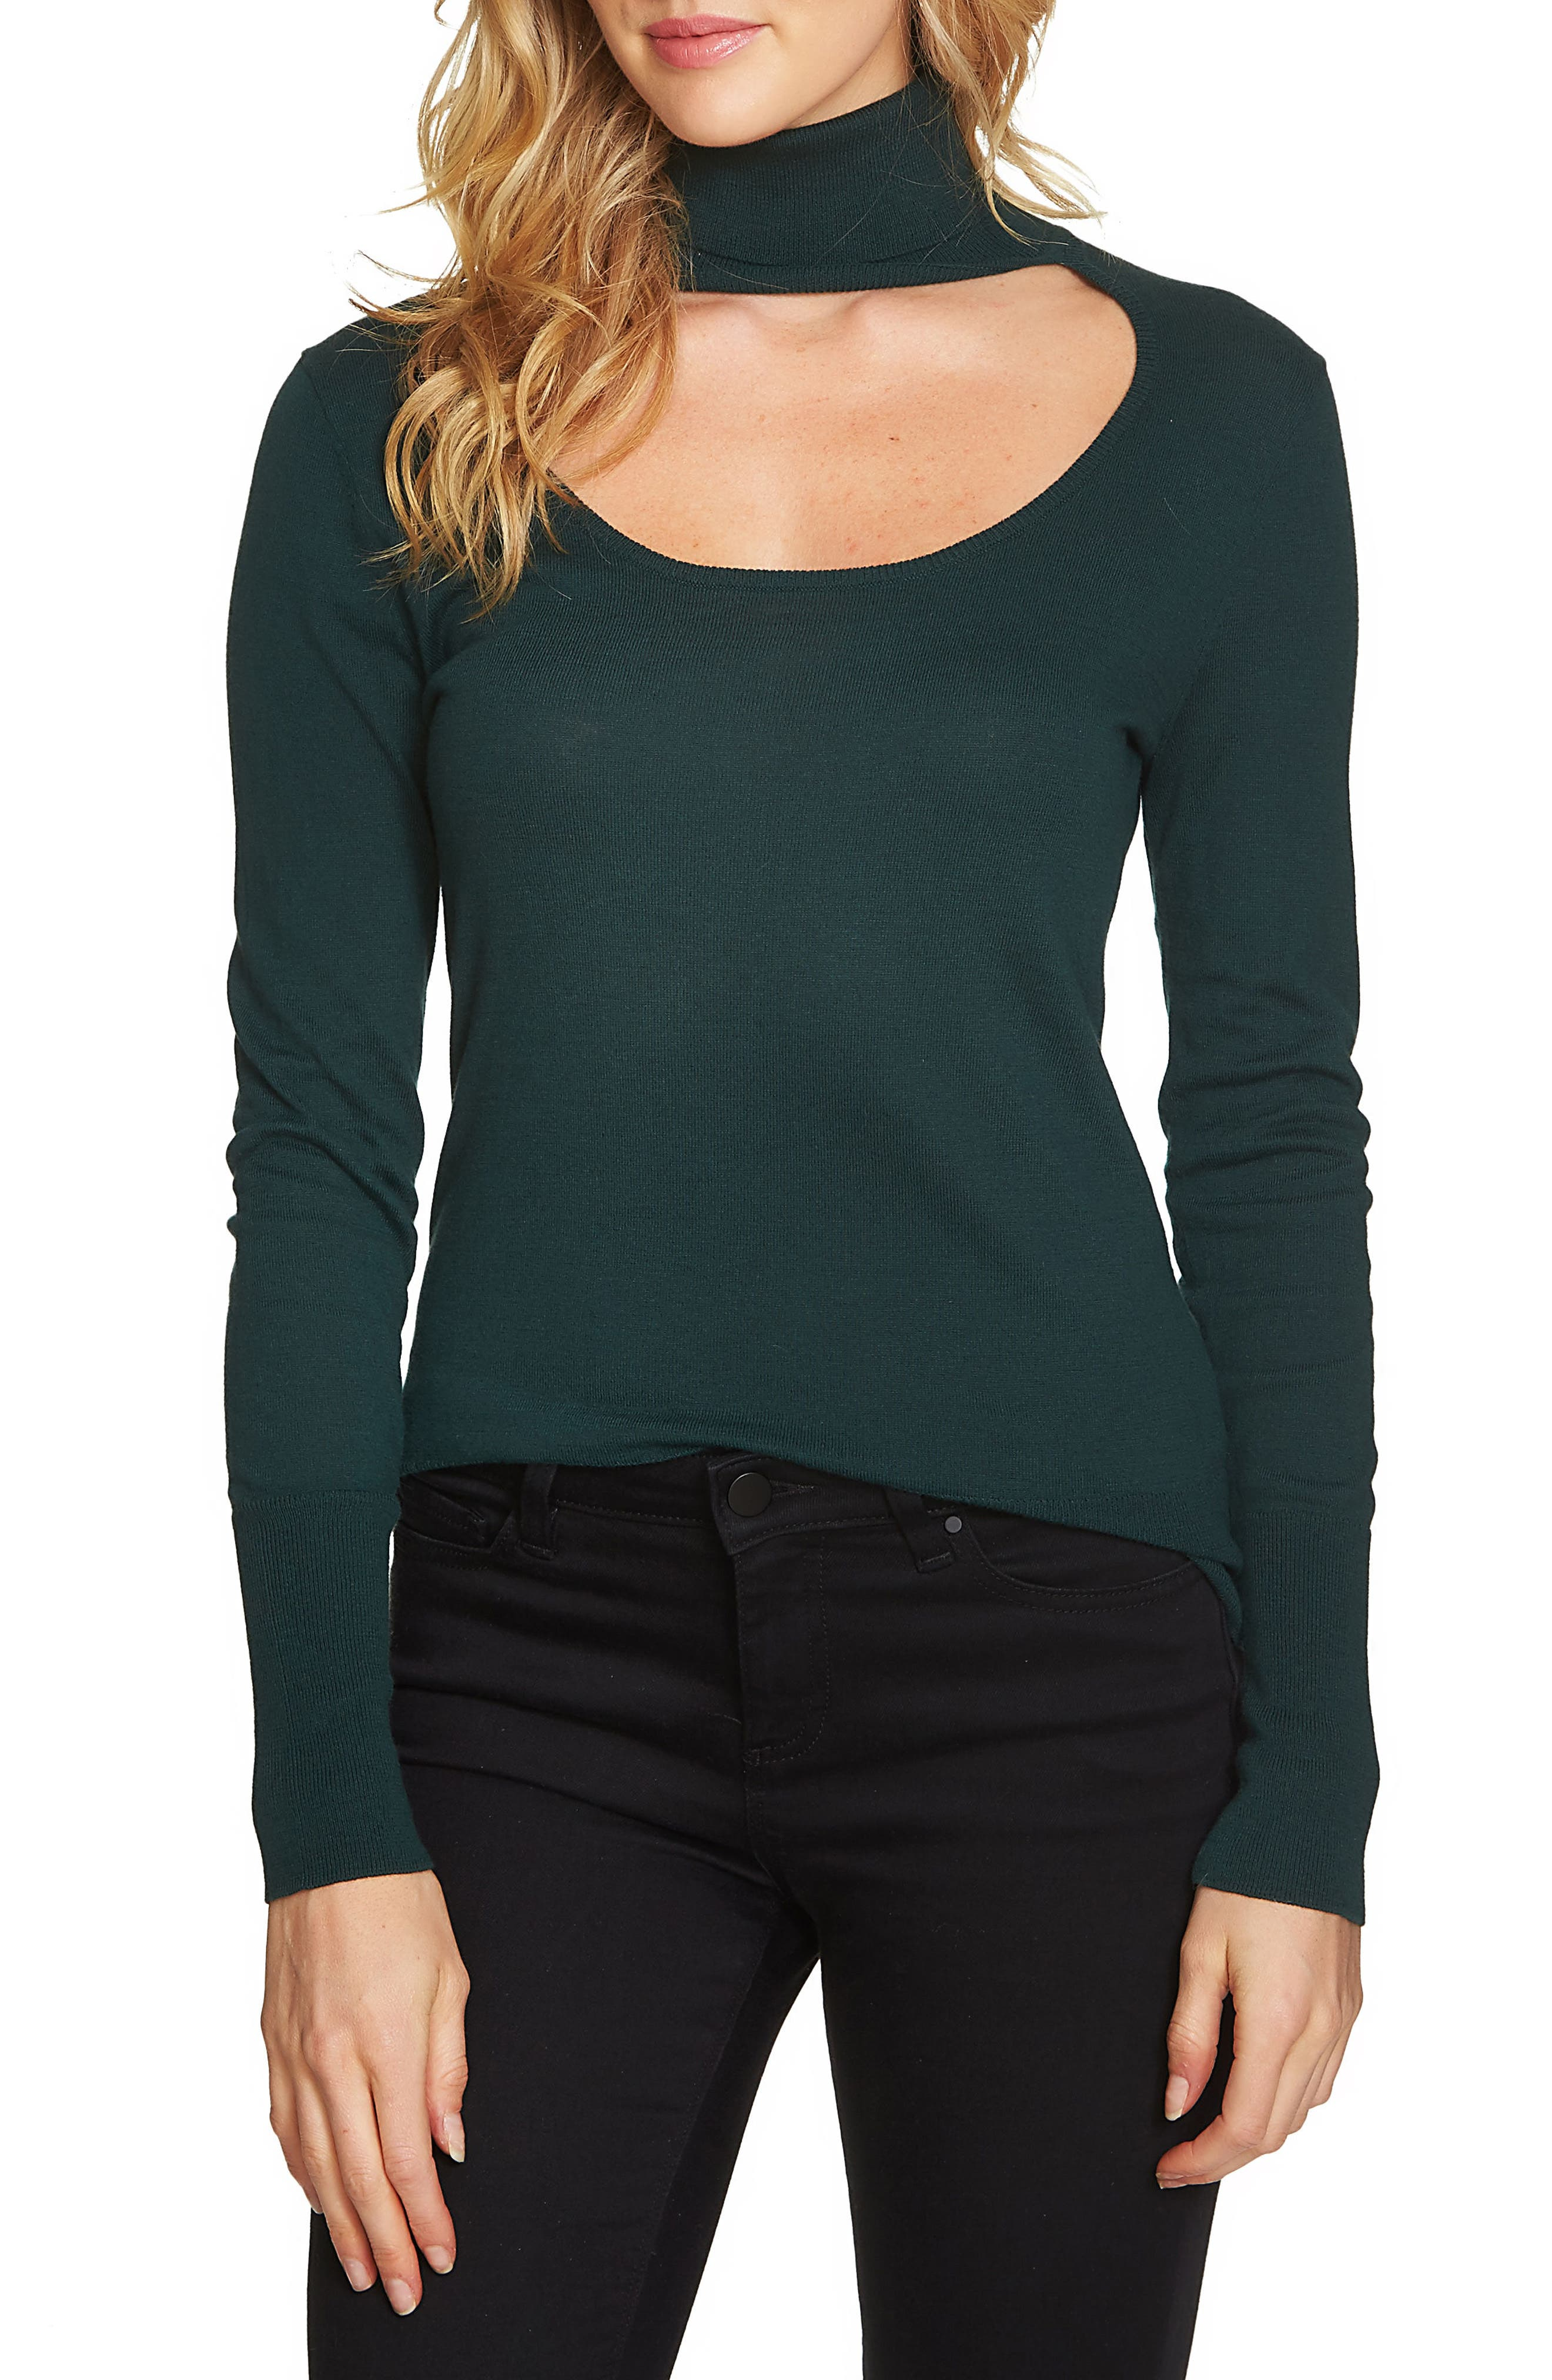 Alternate Image 1 Selected - 1.STATE Cutout Turtleneck Top